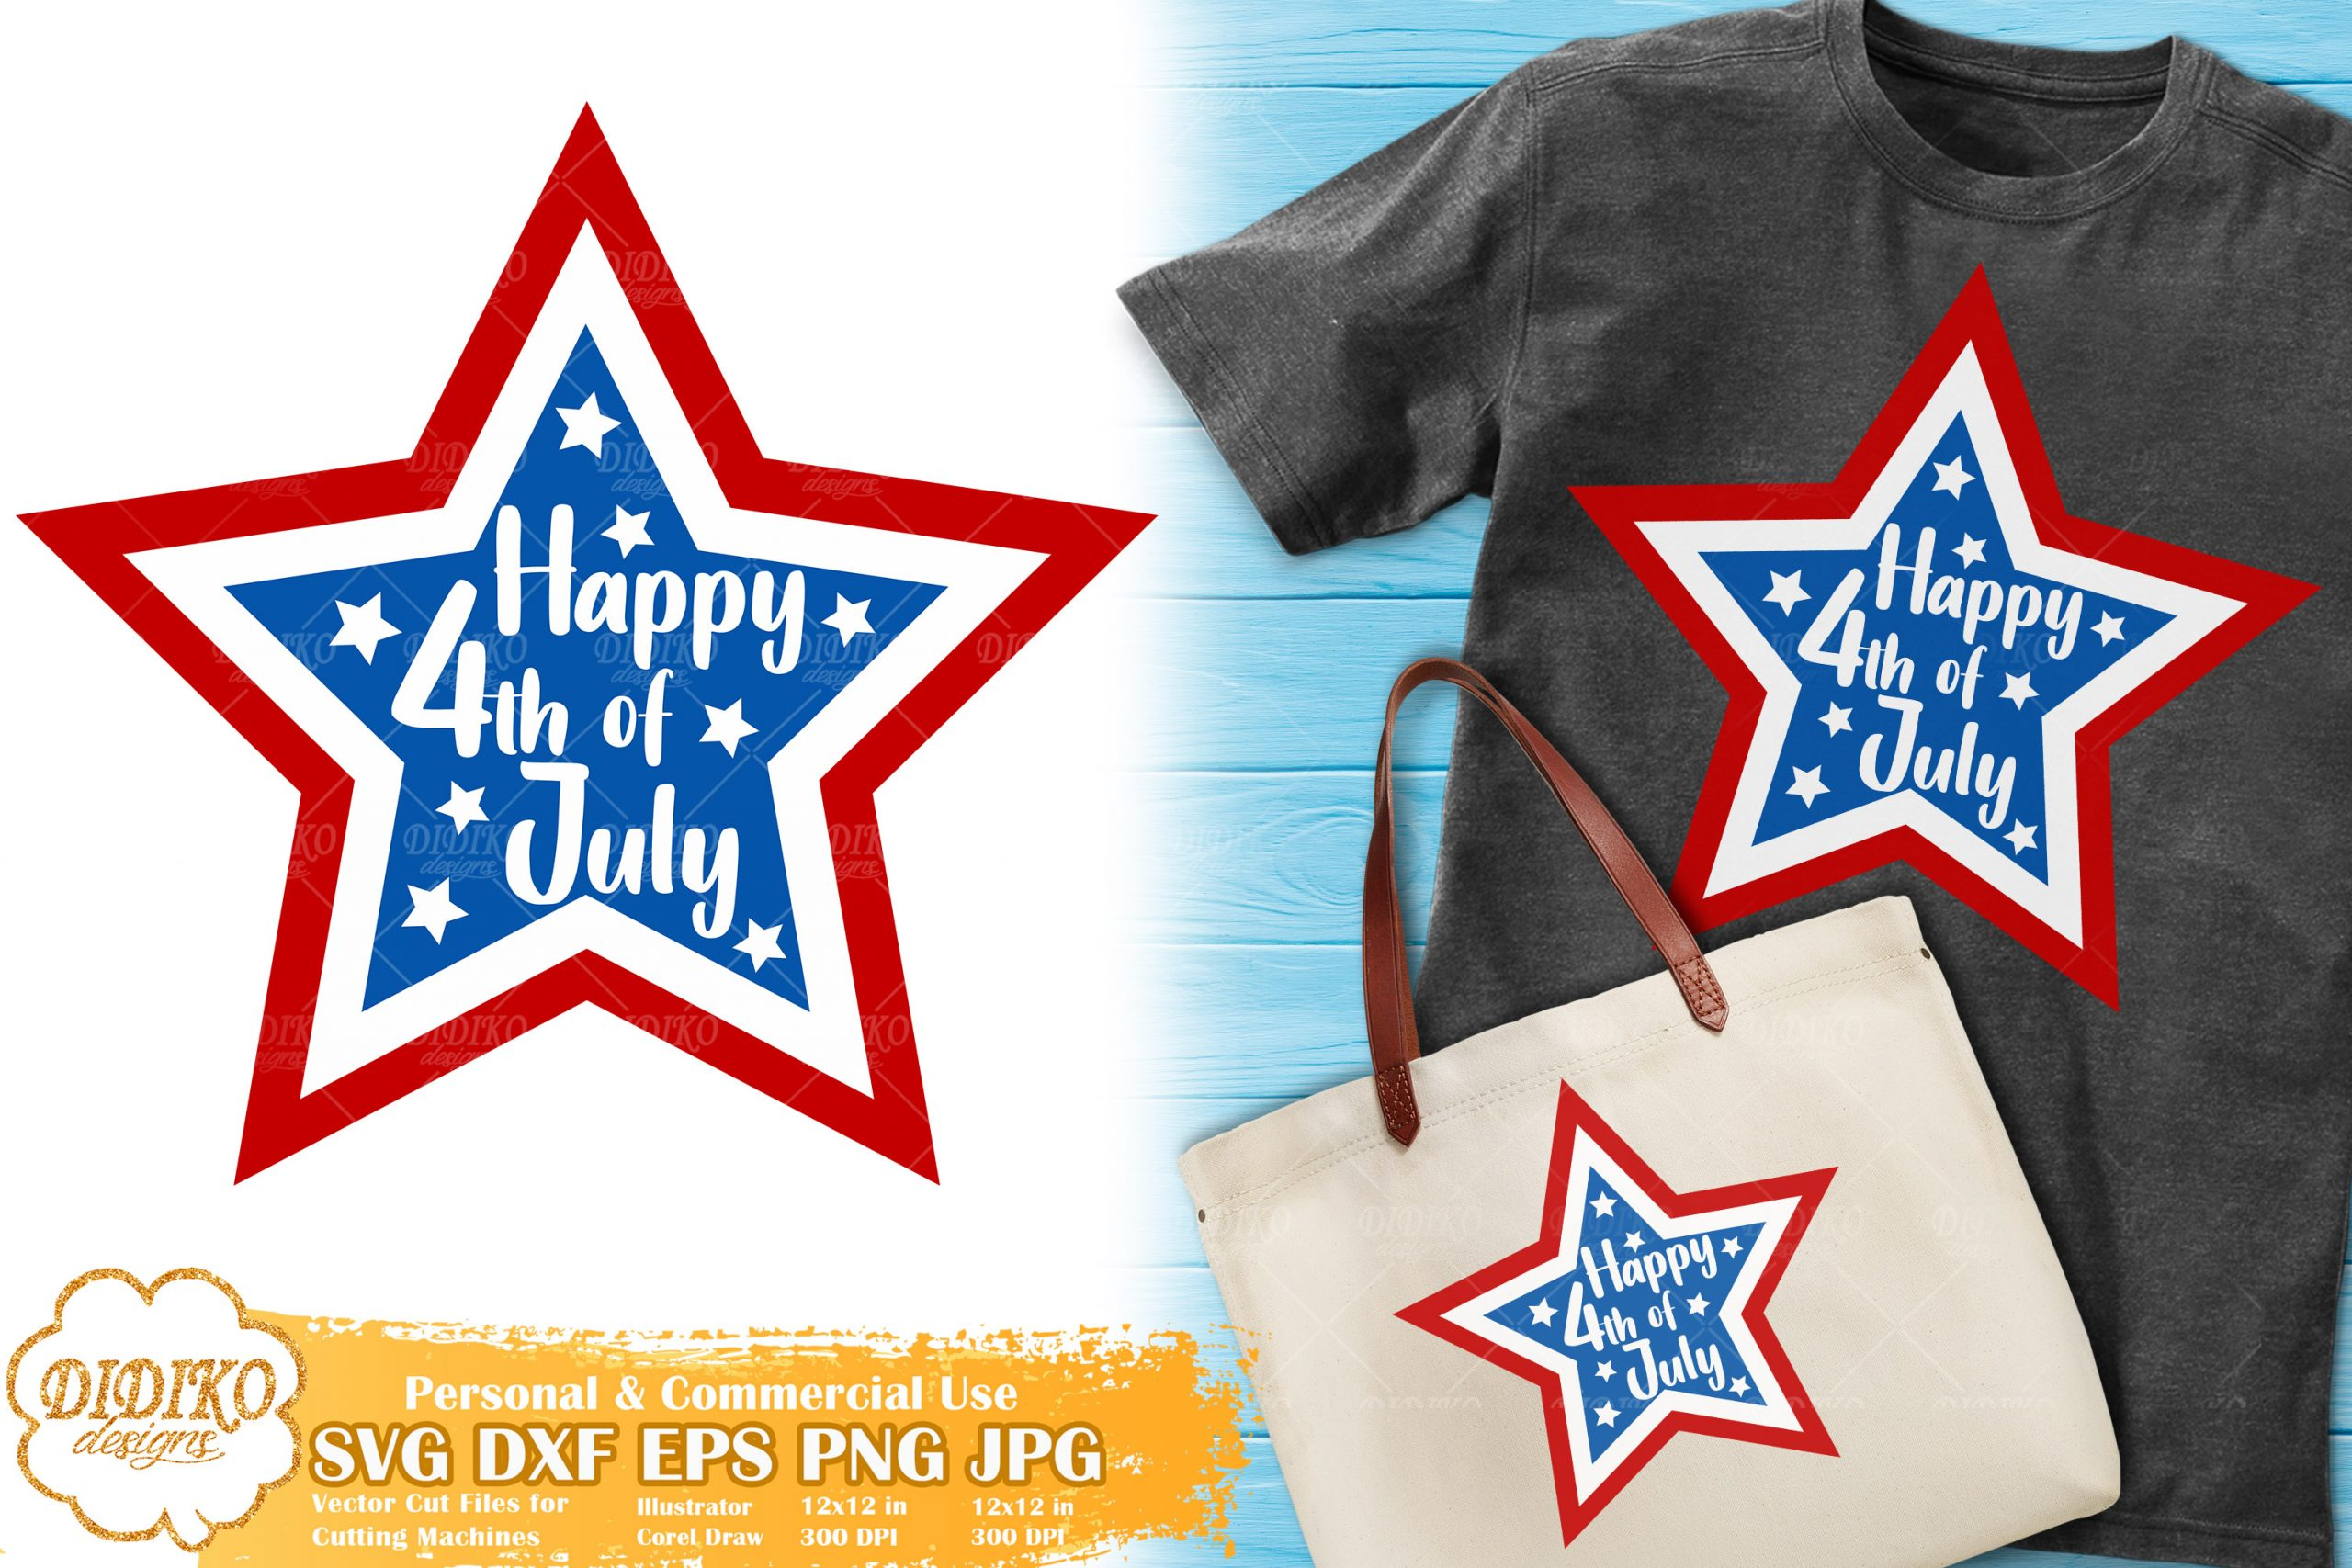 4th of July SVG for Kids